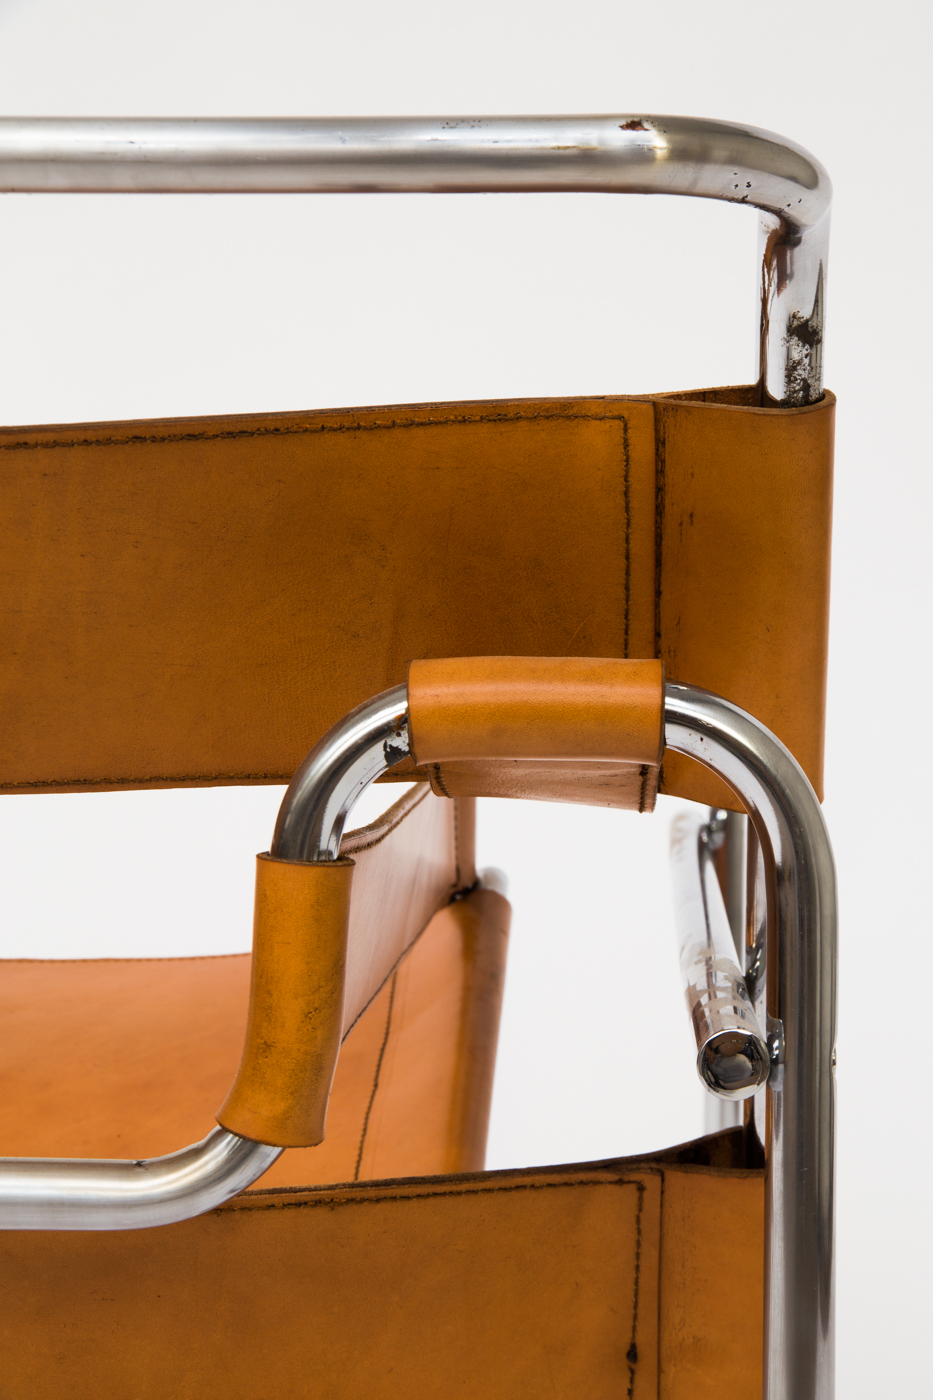 Marcel Breuer, Bauhaus Wassily Chair, early version